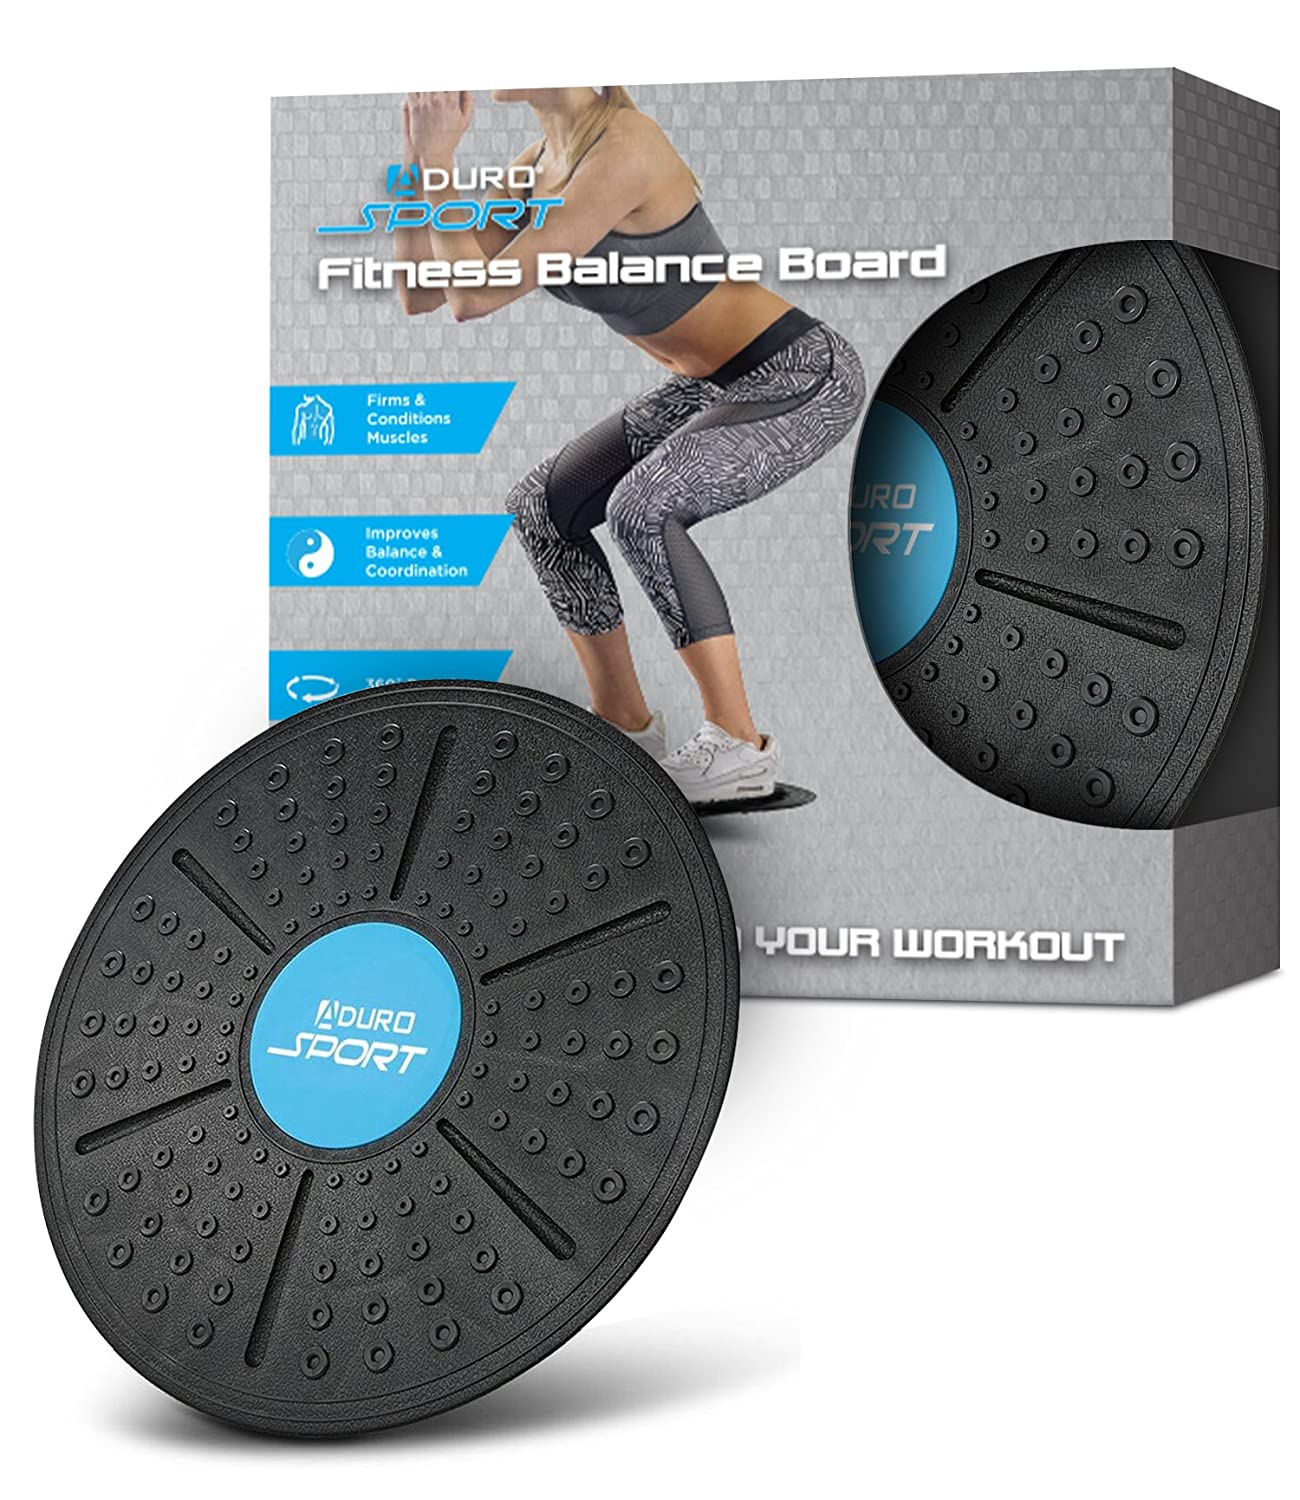 Aduro Sport Fitness Rocker Board